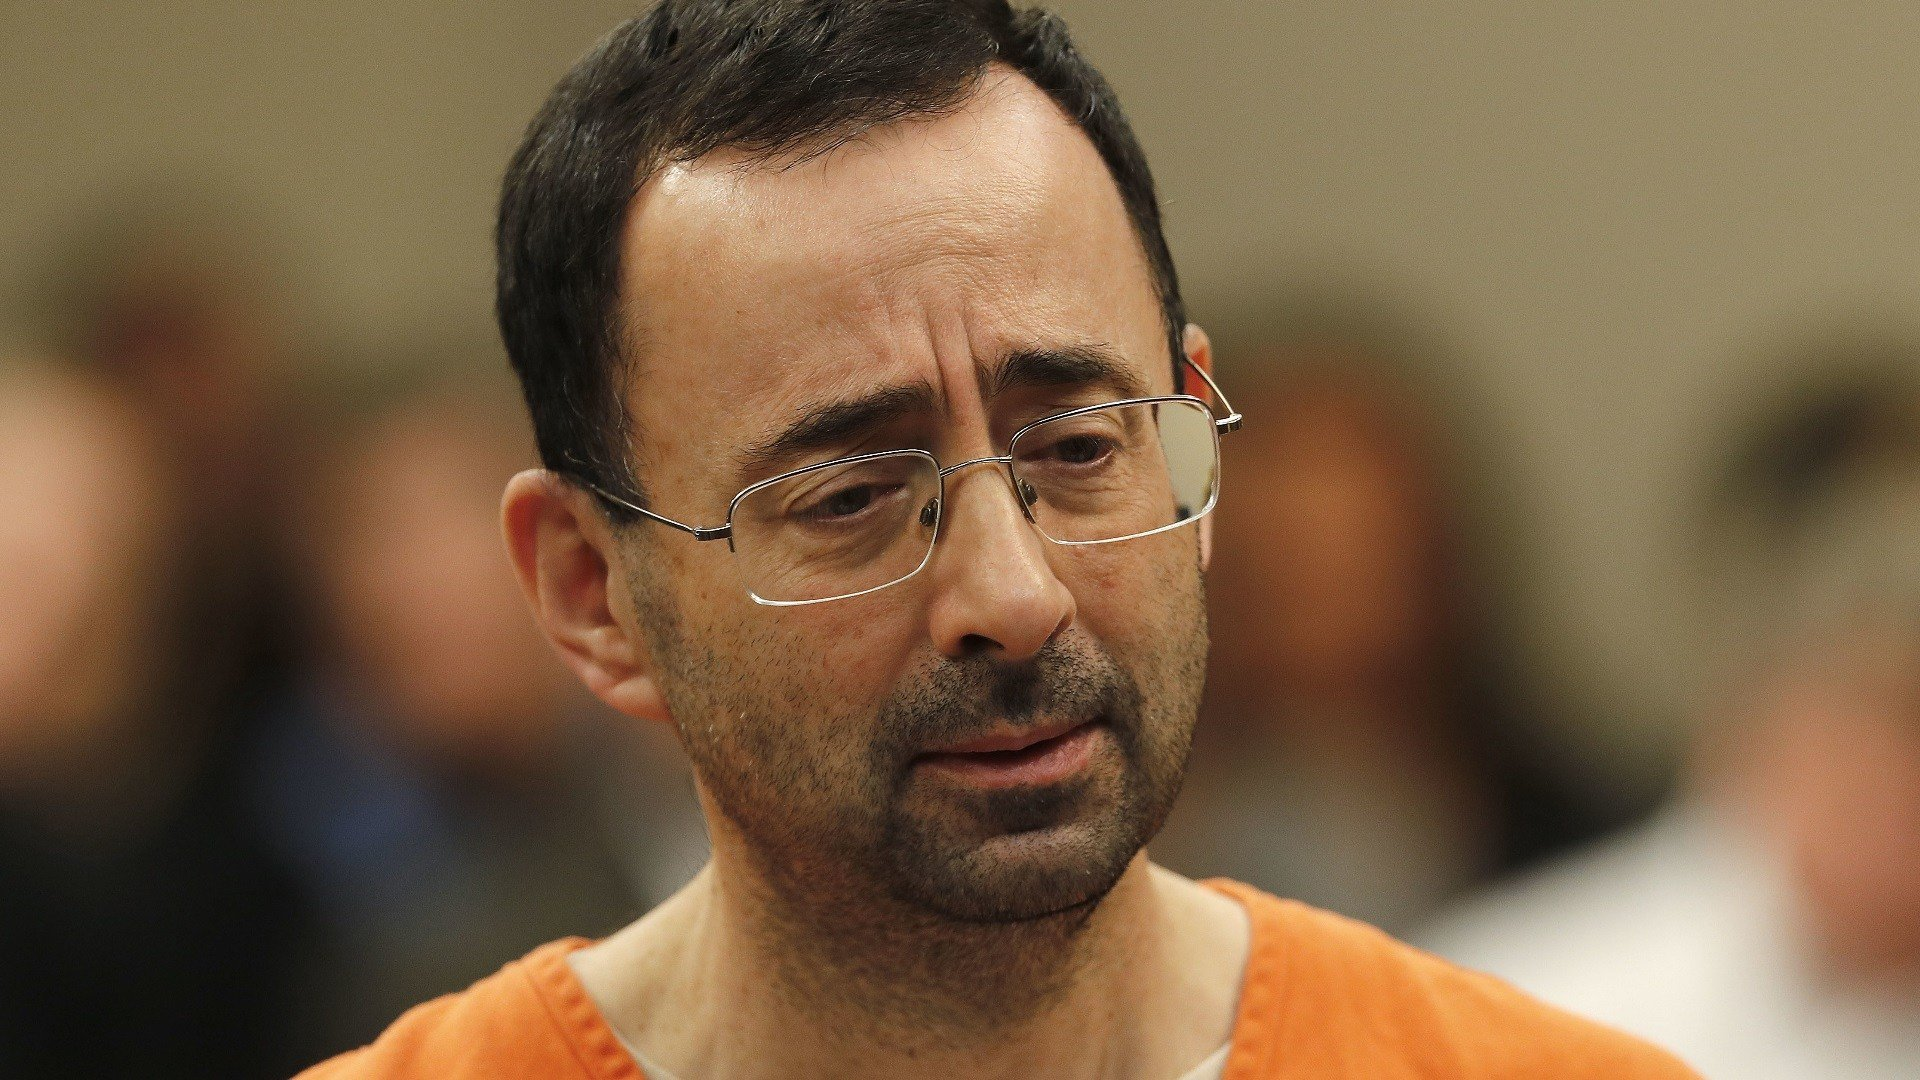 Gold medalist: Nassar should have been imprisoned long ago